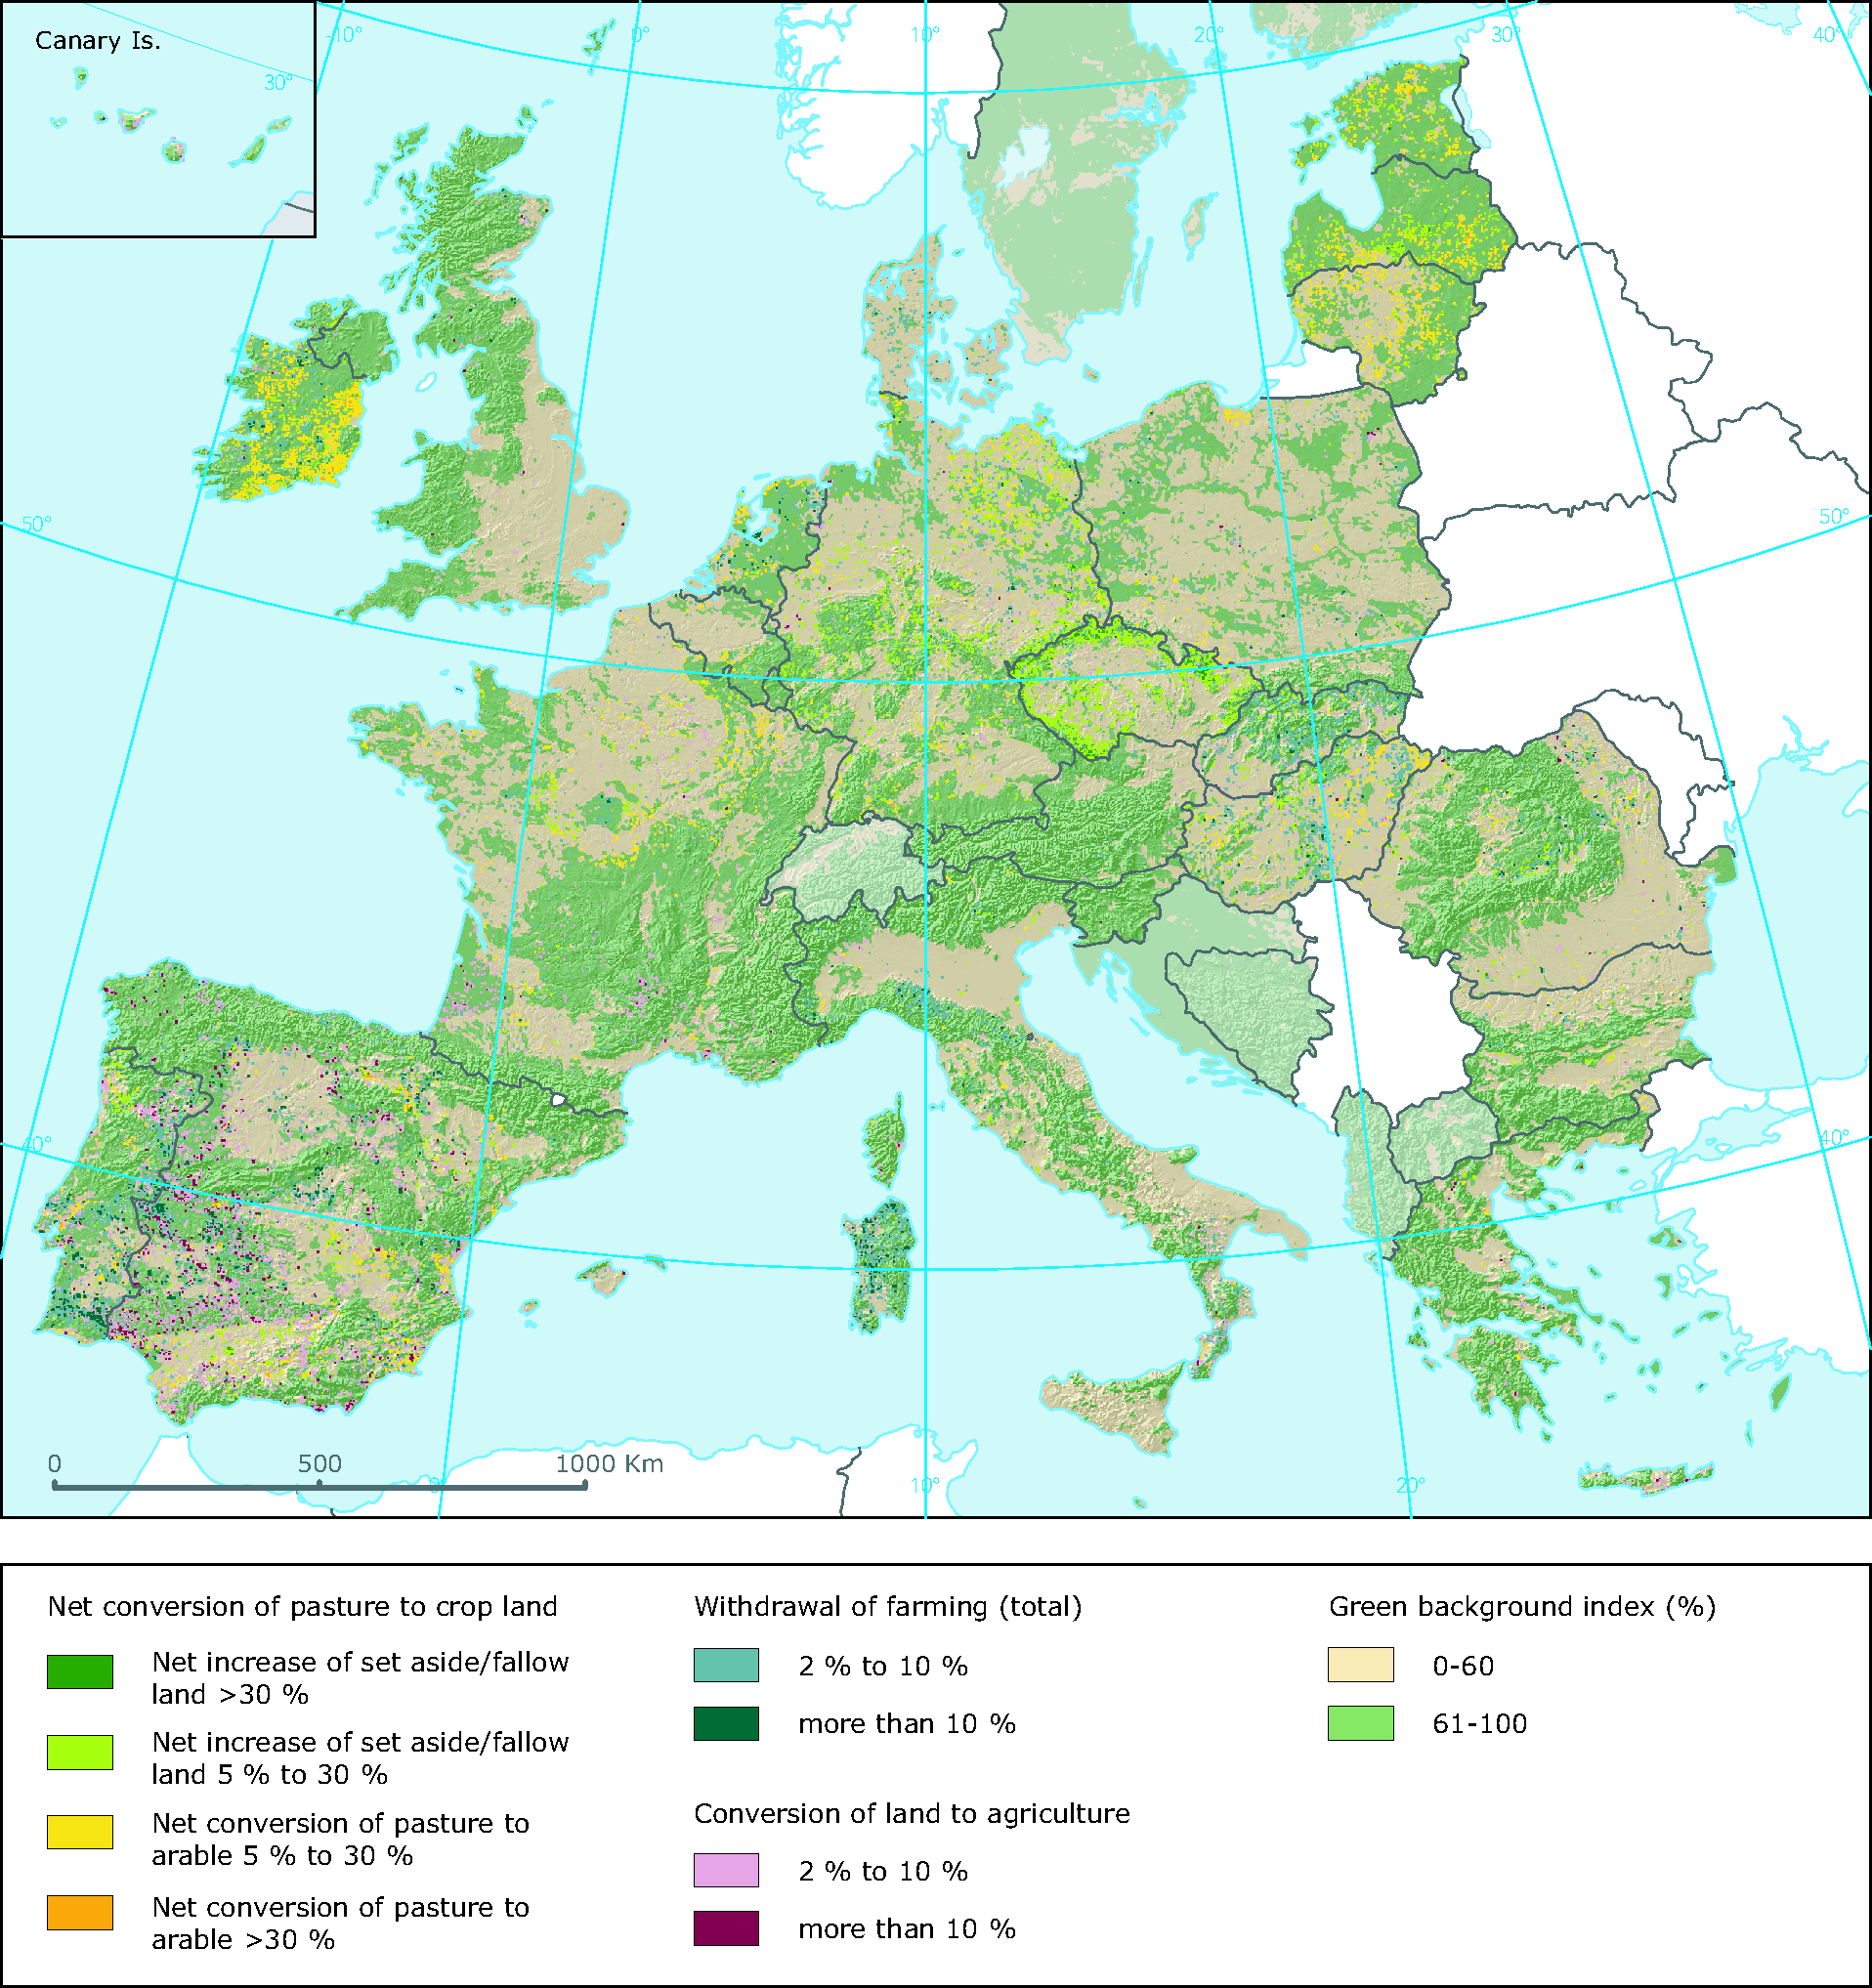 European Environment Agency's home page — European Environment Agency